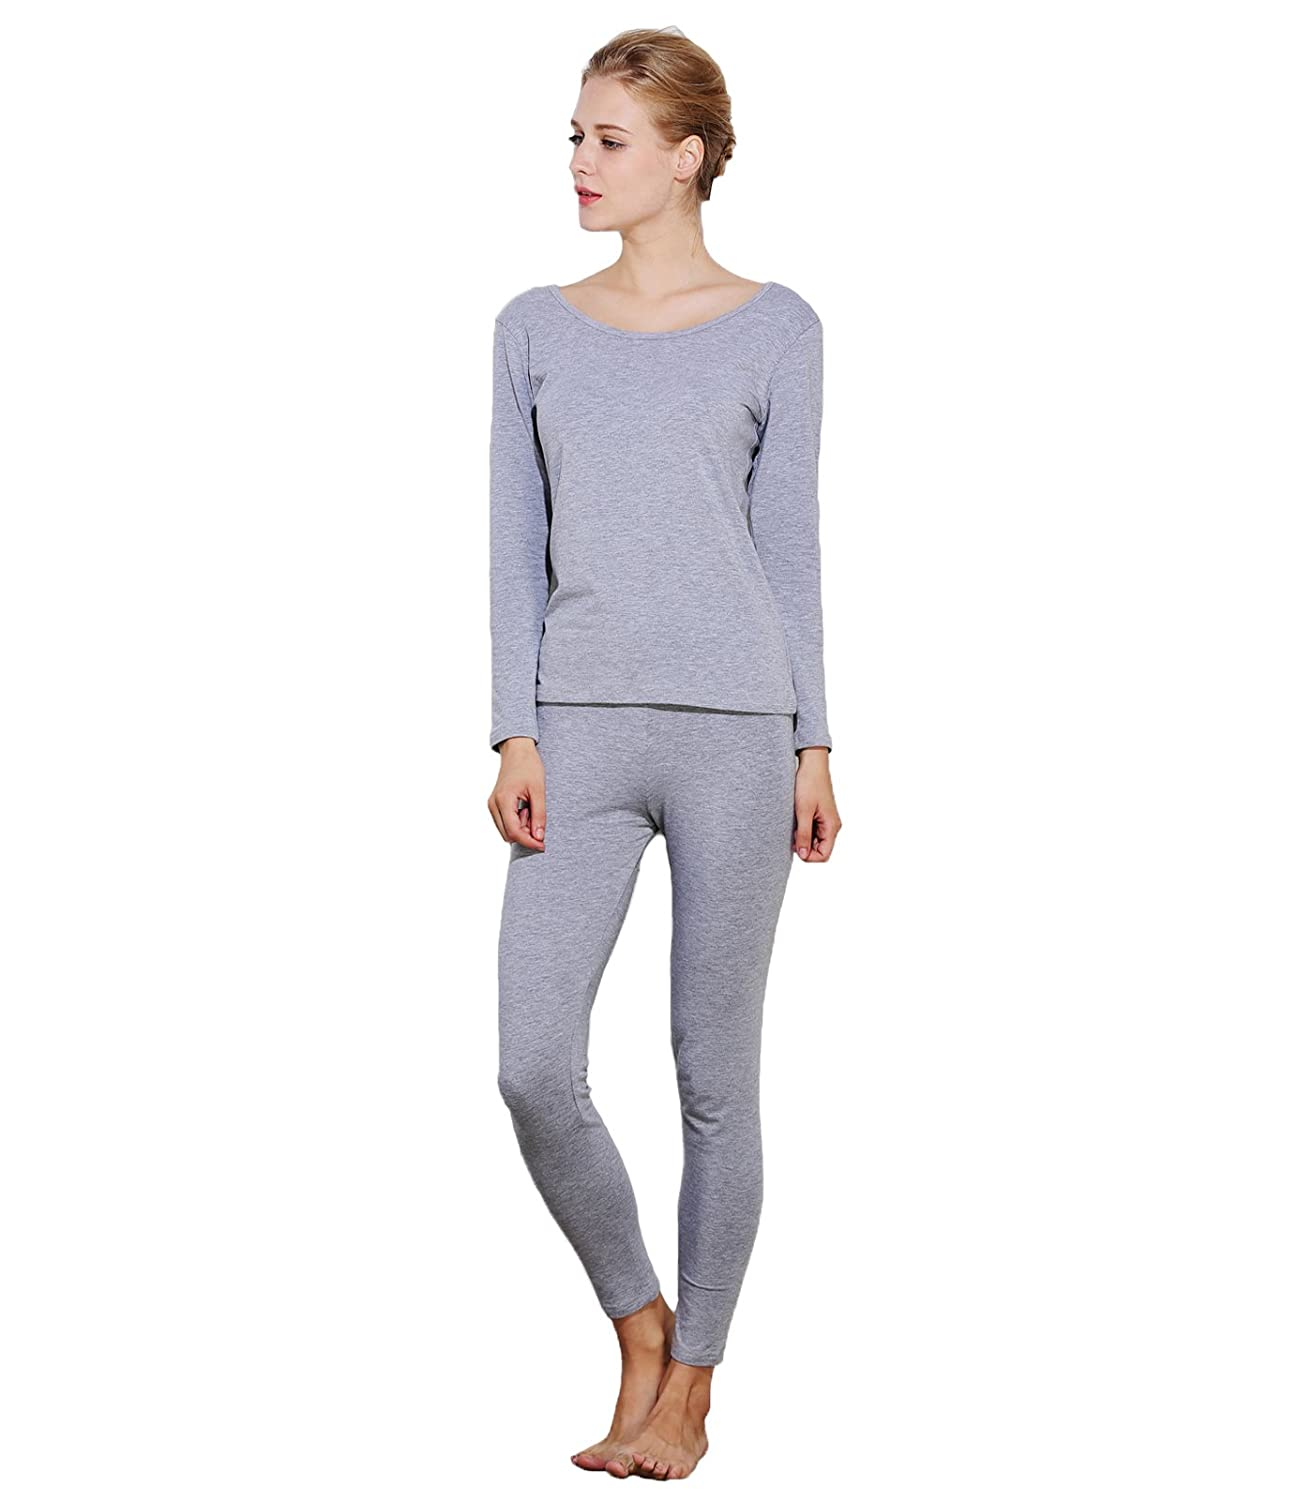 Liang Rou Women's Scoop Neck Thermal Underwear Long Johns Set Baifu International Limited MS560-P